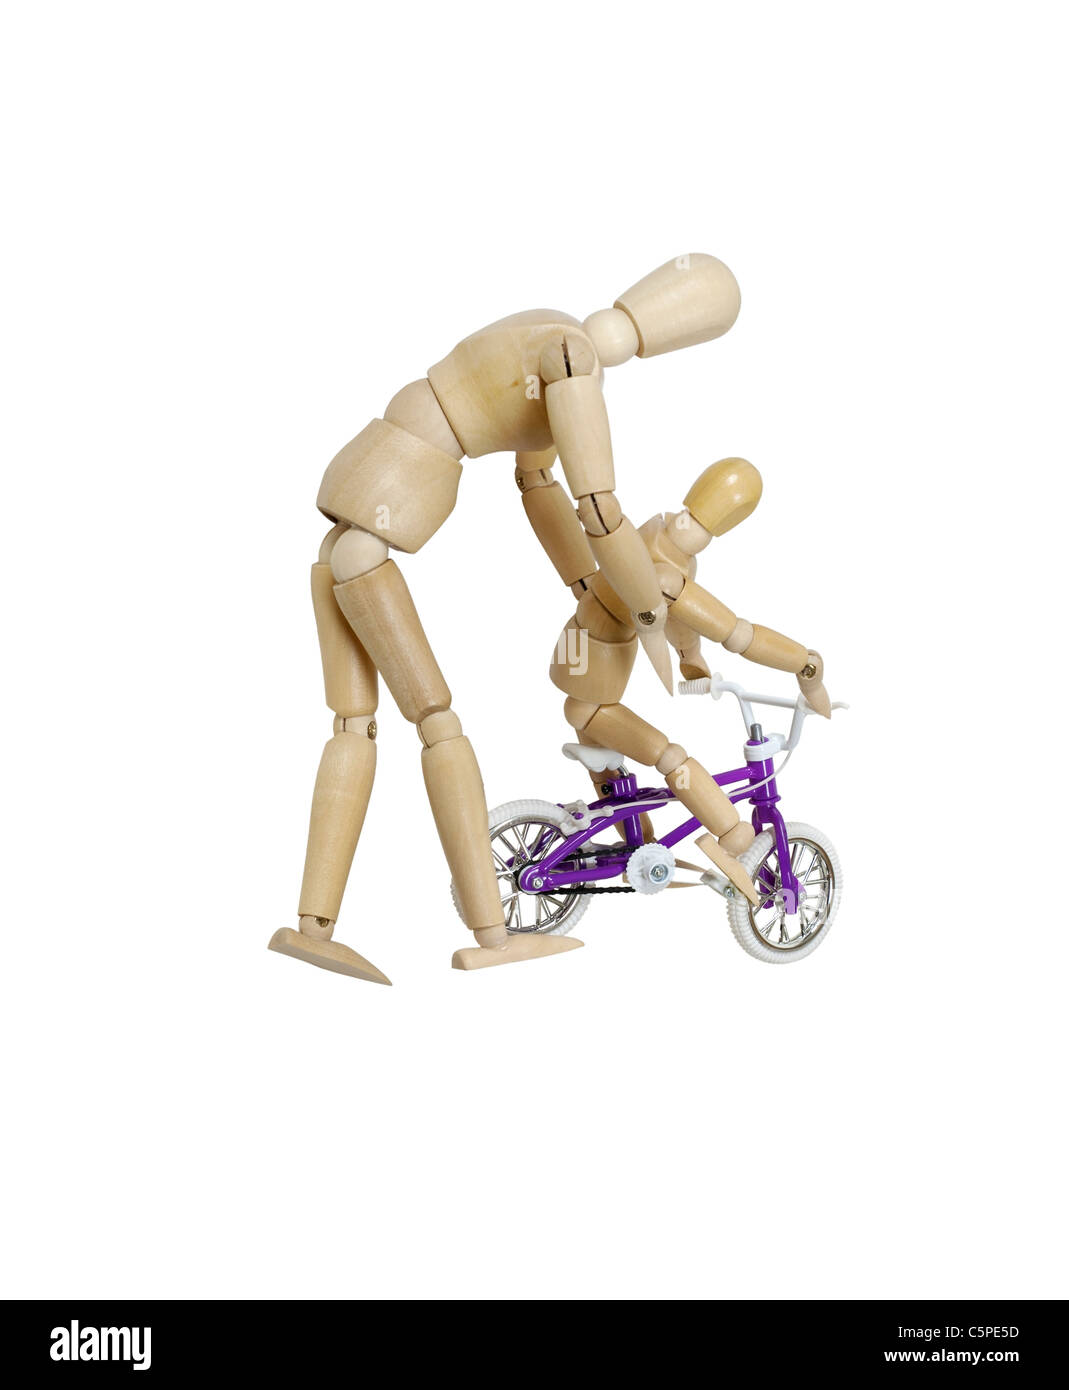 Parent teaching their child how to ride a bicycle - Path included - Stock Image